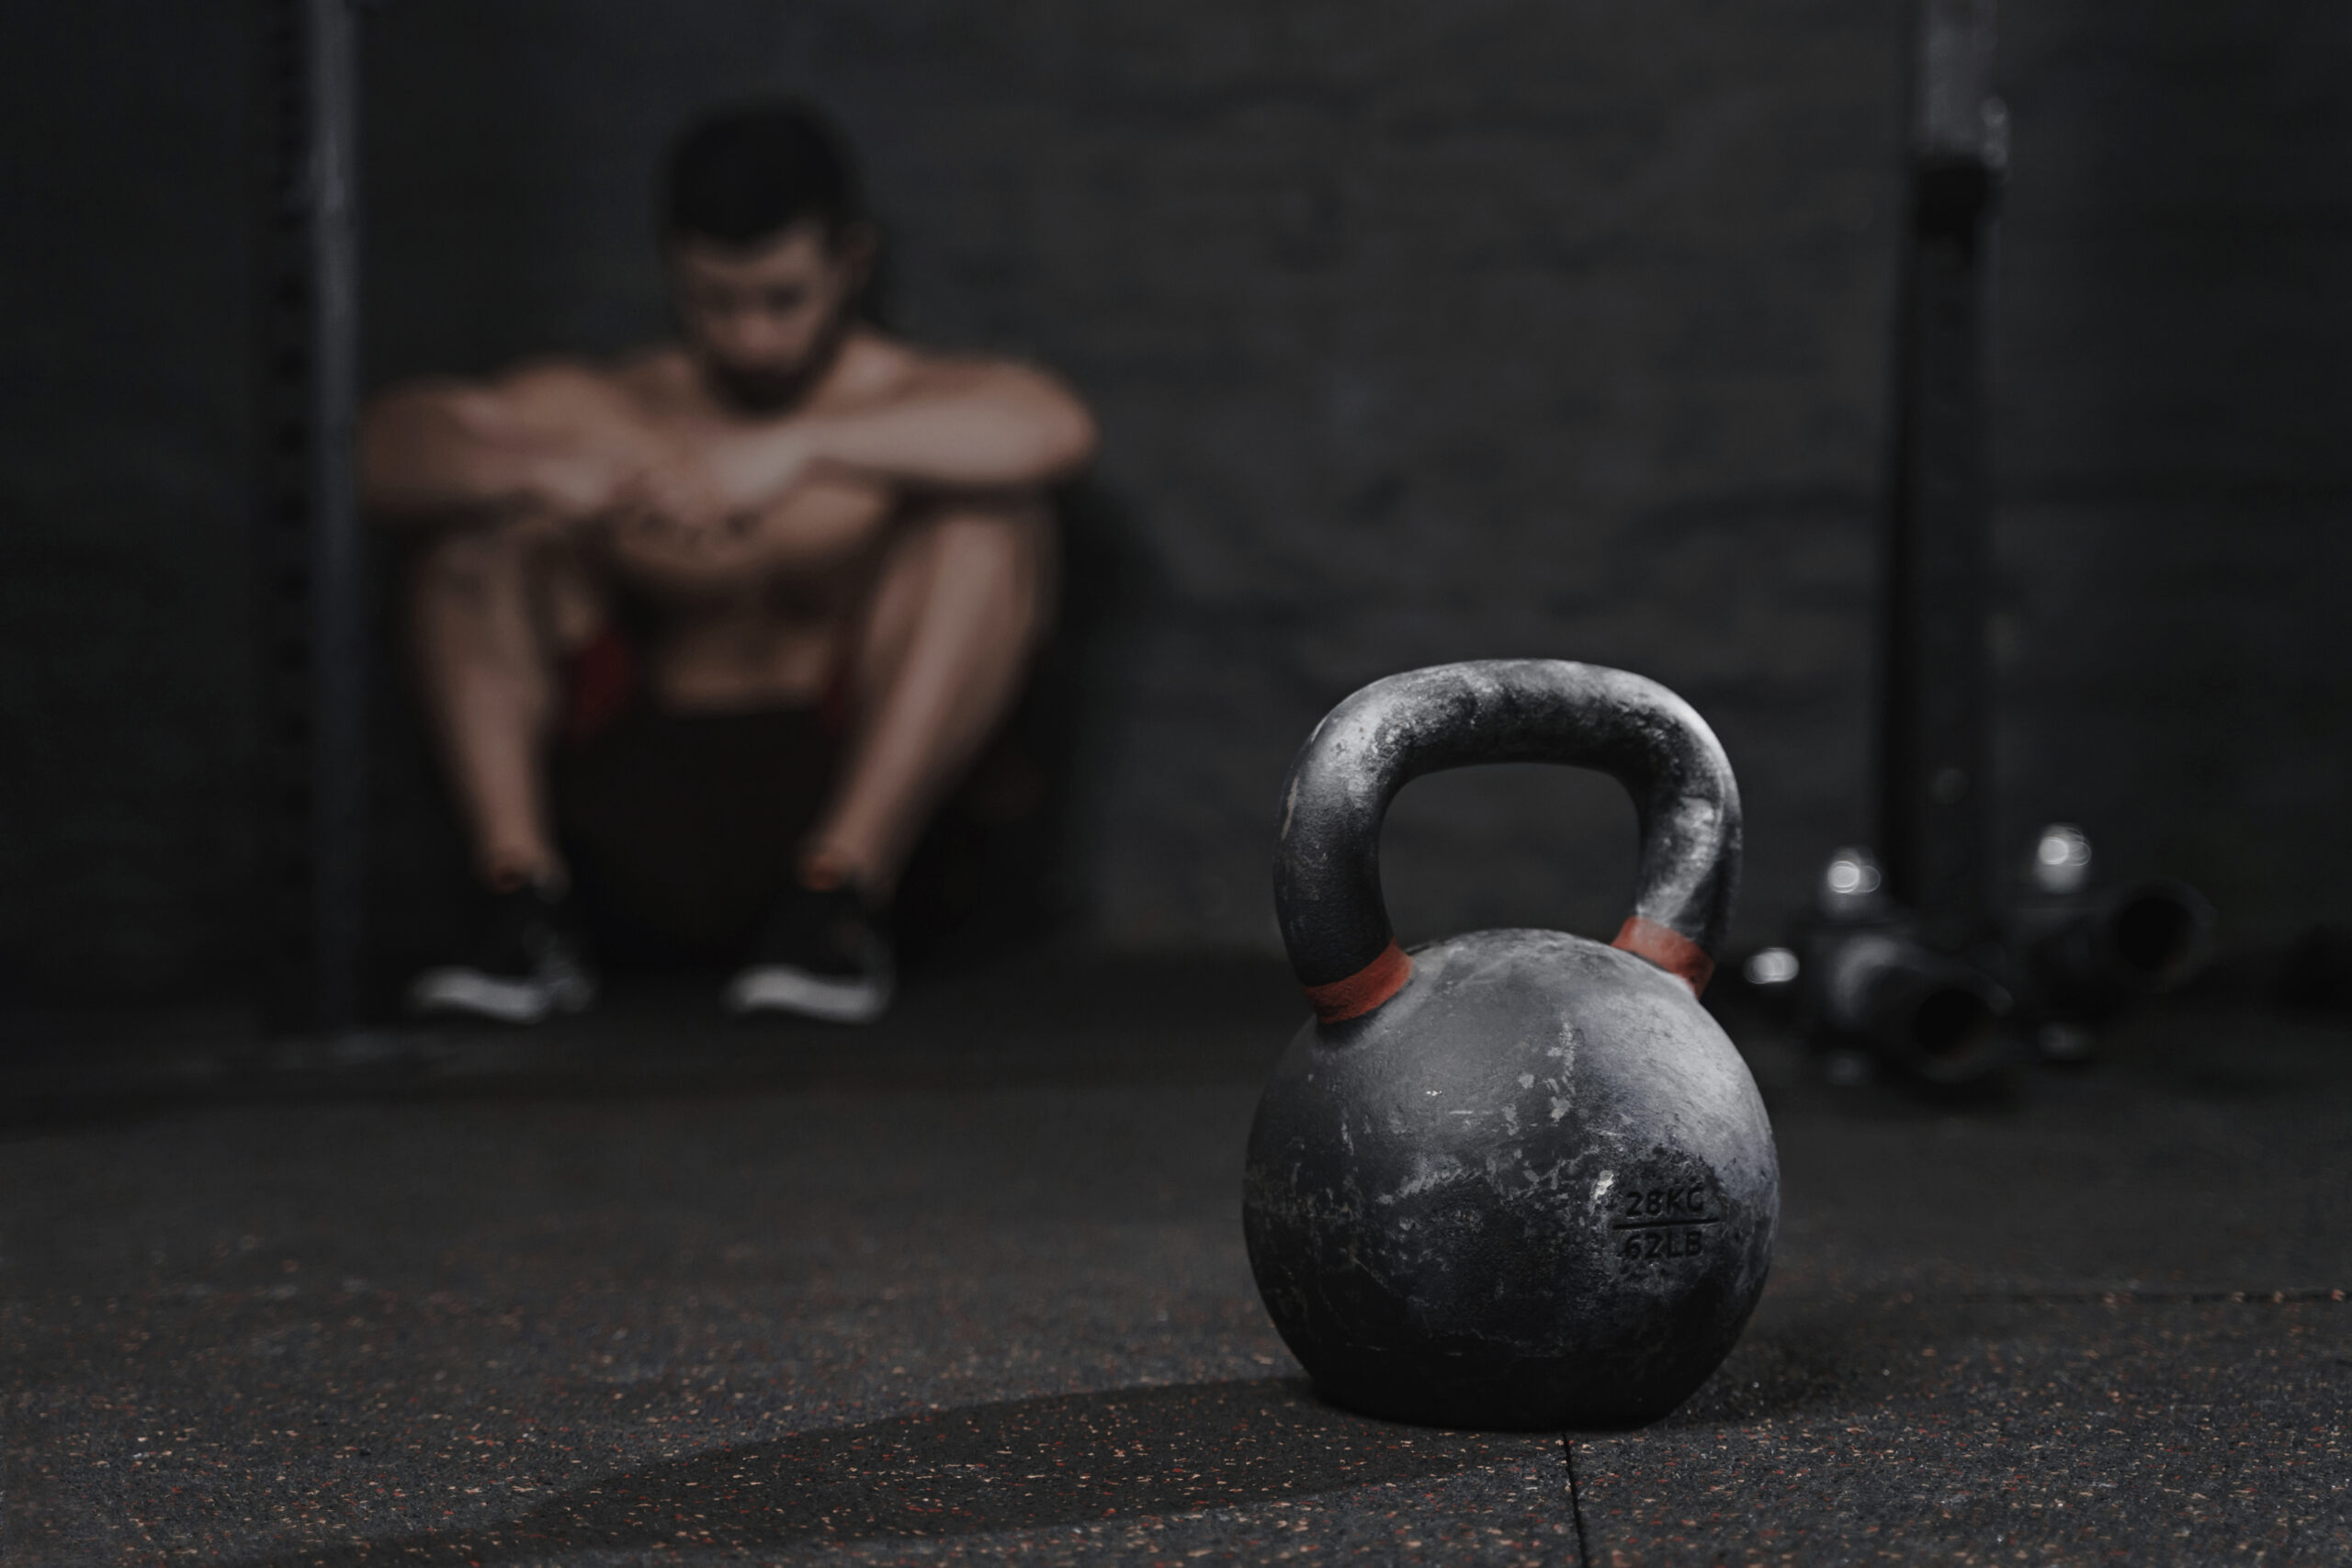 Sporty man sitting at the gym suffering breakdown to overcome. Demotivation sport concept. Stress and fatigue in sport. Crossfit kettlebell training.